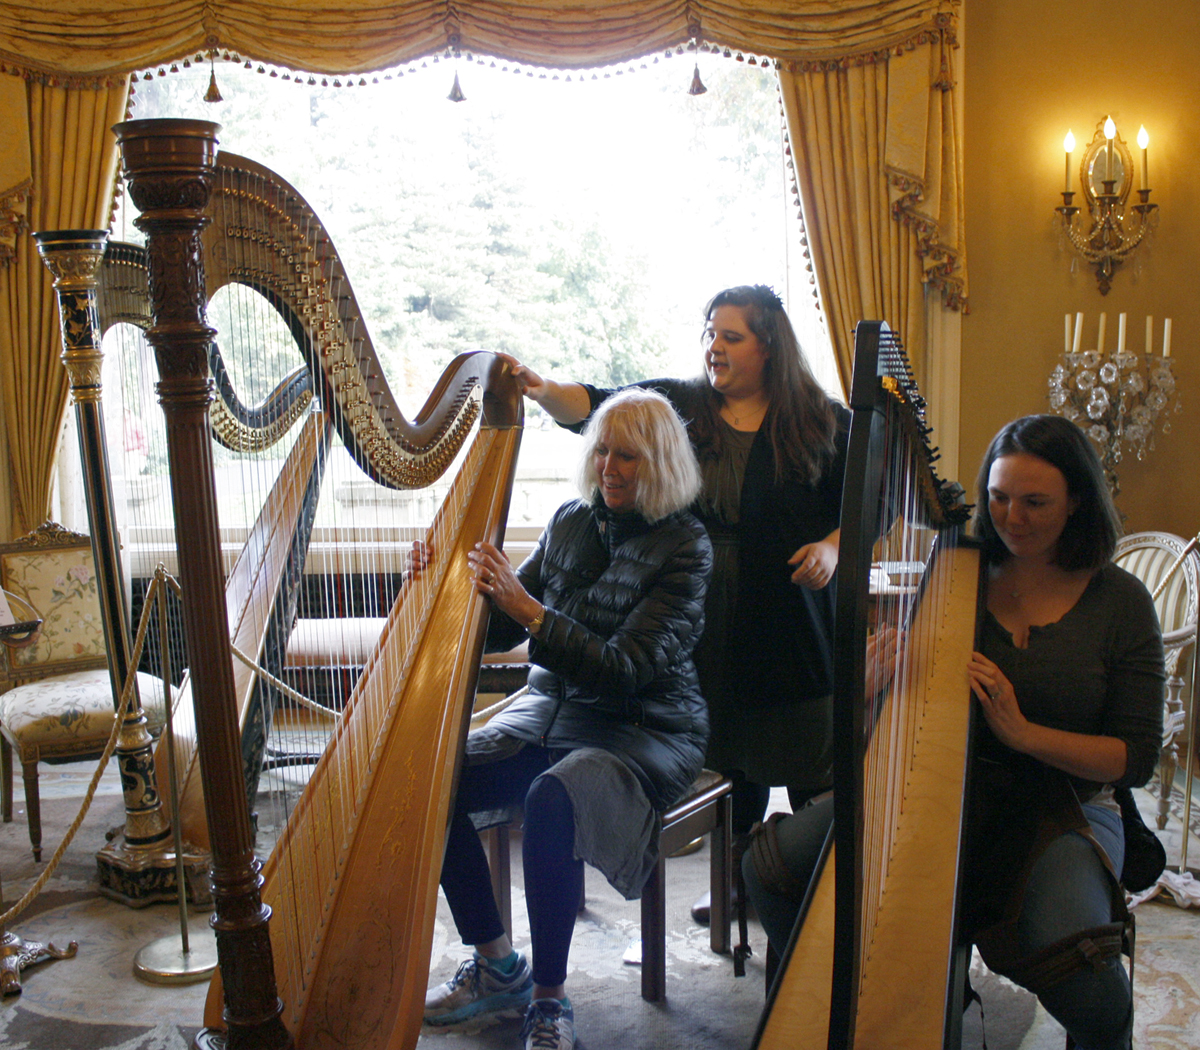 Guests exploring the harp